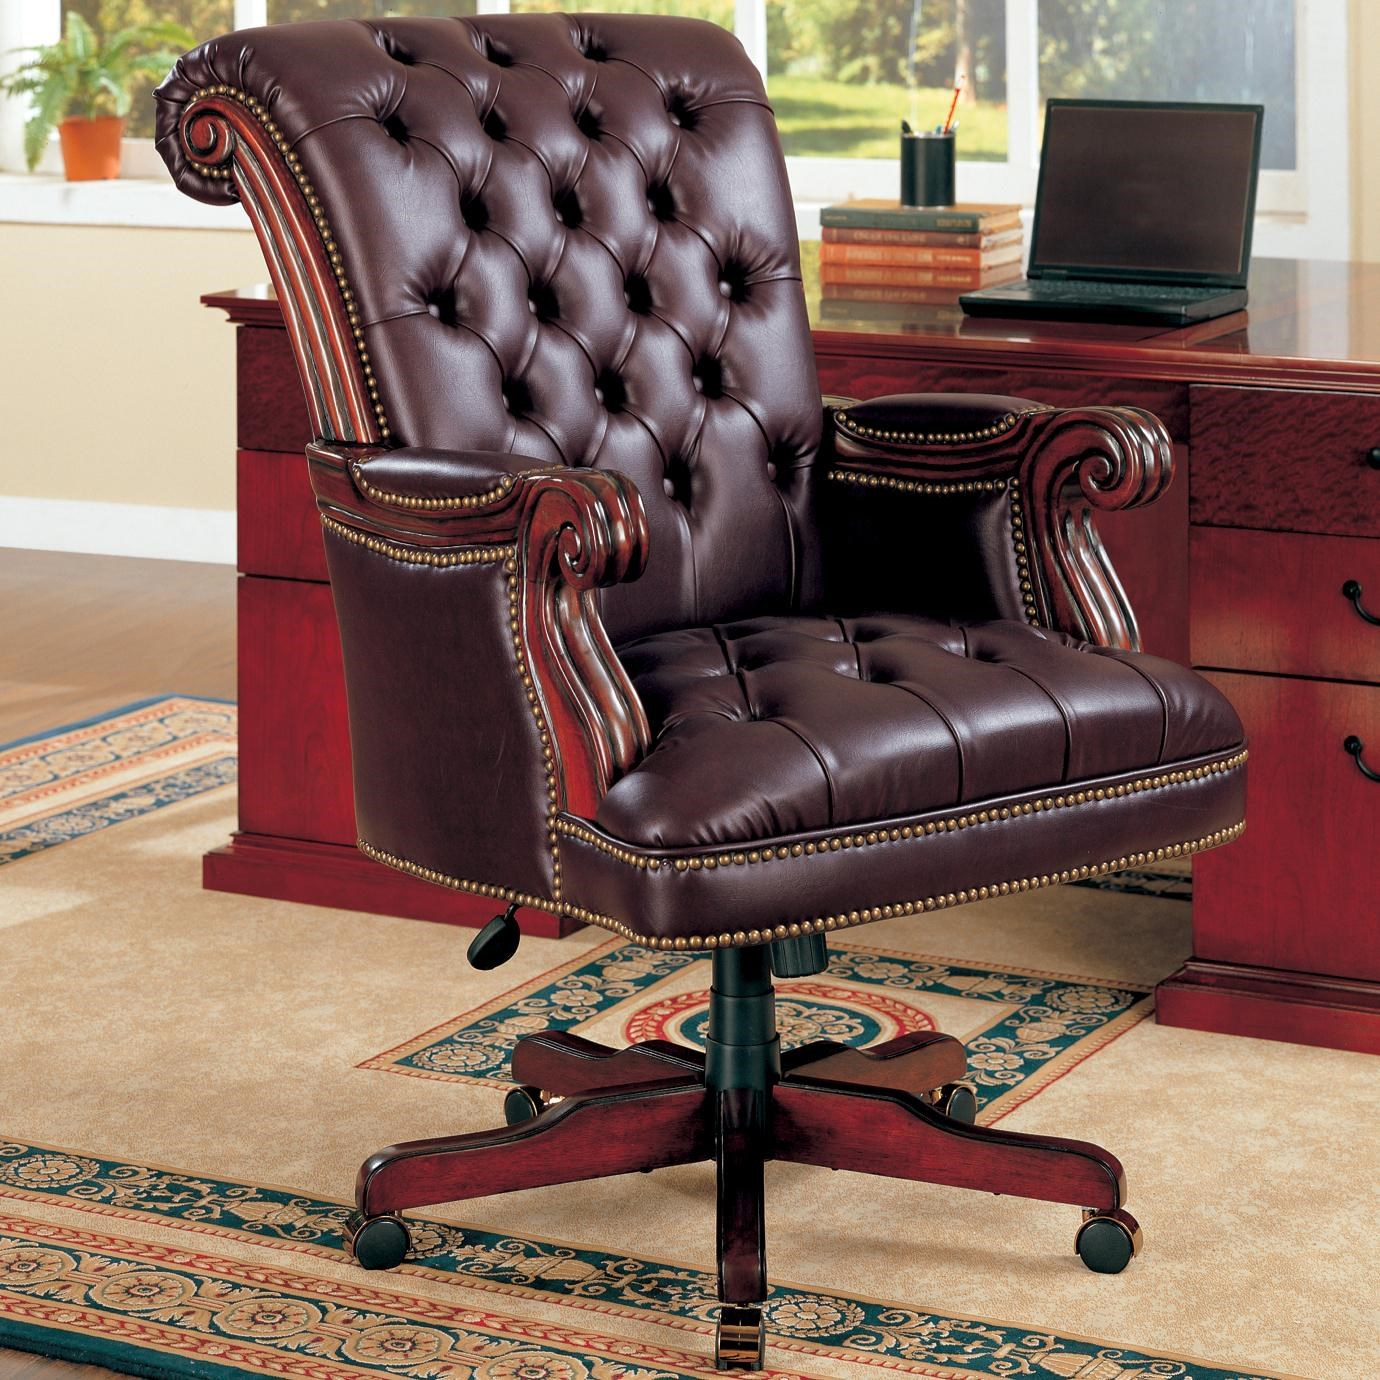 office club chairs revolving chair in kolkata coaster 800142 traditional leather executive dunk bright furniture desk